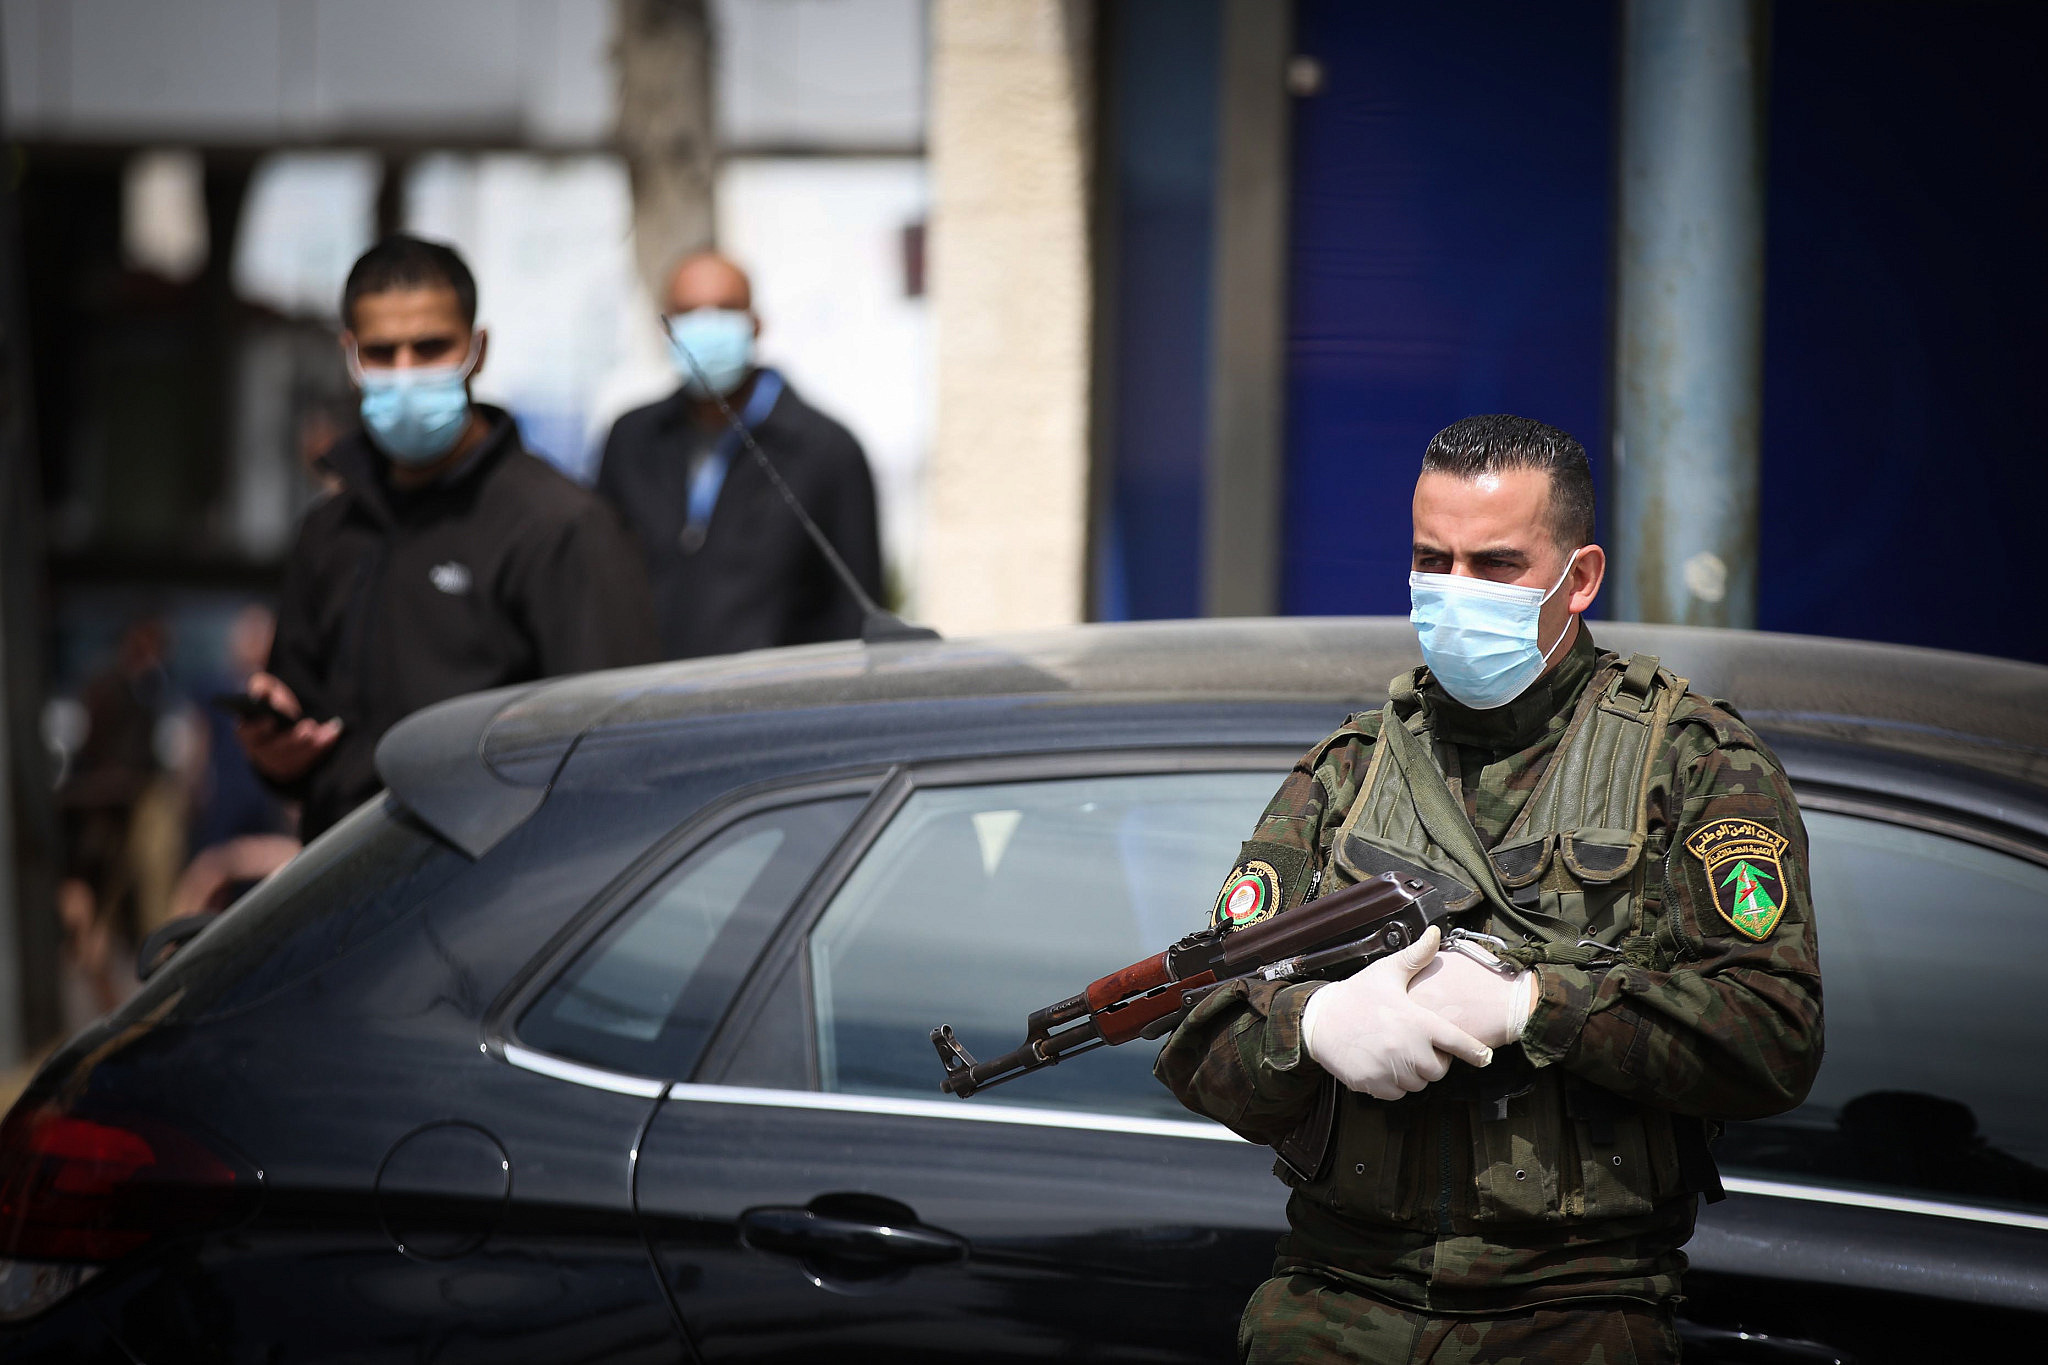 Palestinian municipal workers disinfect the parking lot of a hospital, in the West Bank city of Ramallah, March 12, 2020. (Flash90)